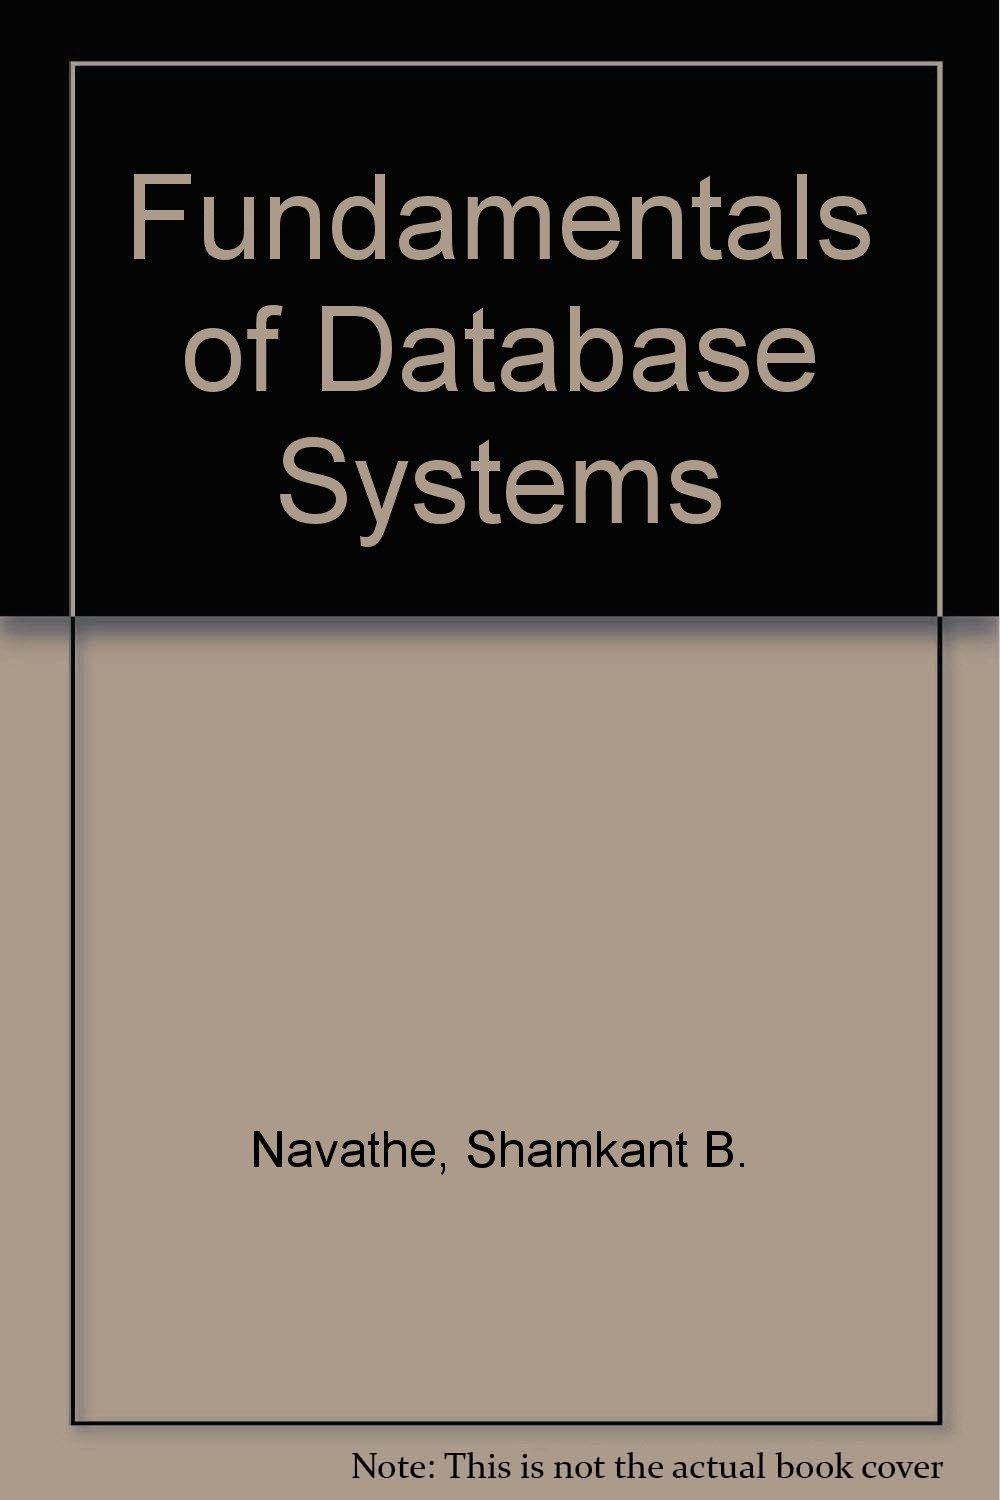 Fundamentals of Database Systems (3rd Edition)